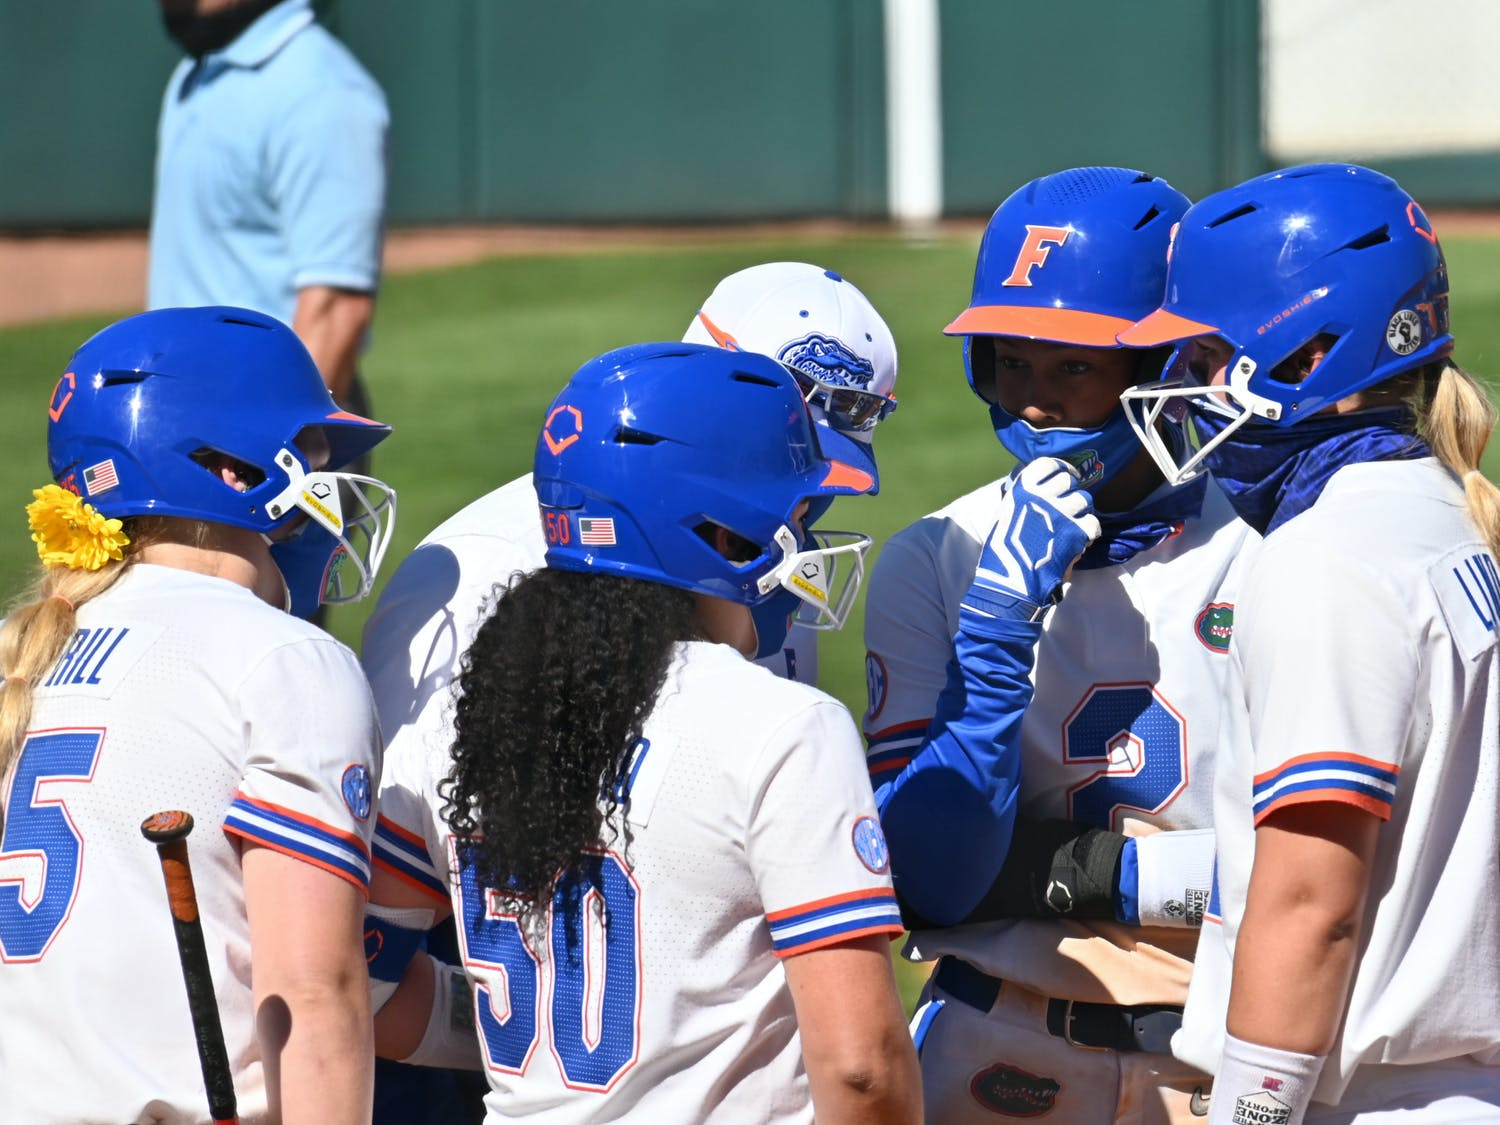 The Gators walked away with a pair of wins, 9-1 and 2-1. Photo from UF-Charlotte game Feb. 20.